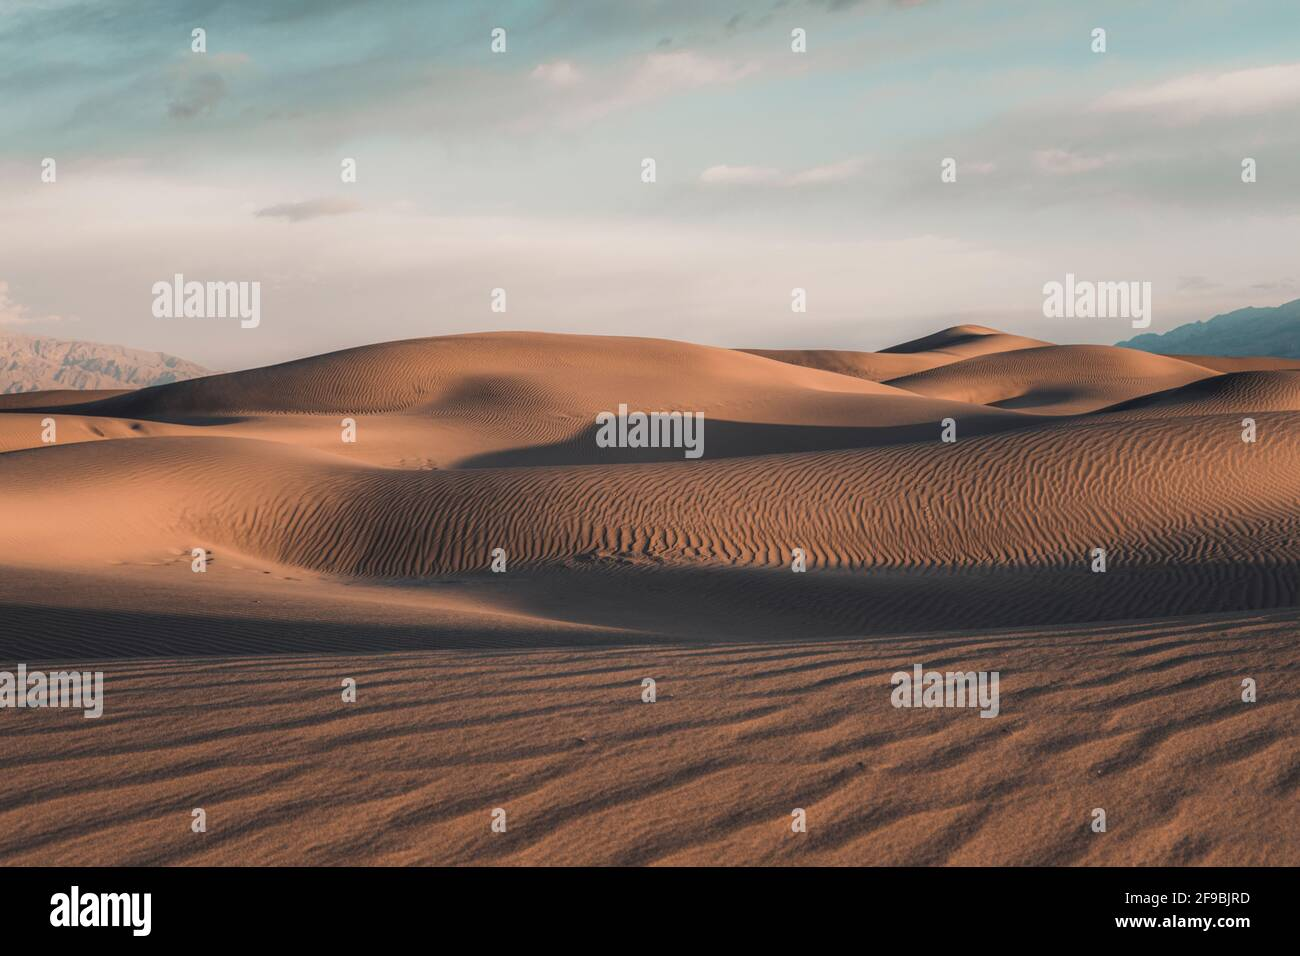 Rising dunes at Mesquite Flat in Death Valley, California. Stock Photo